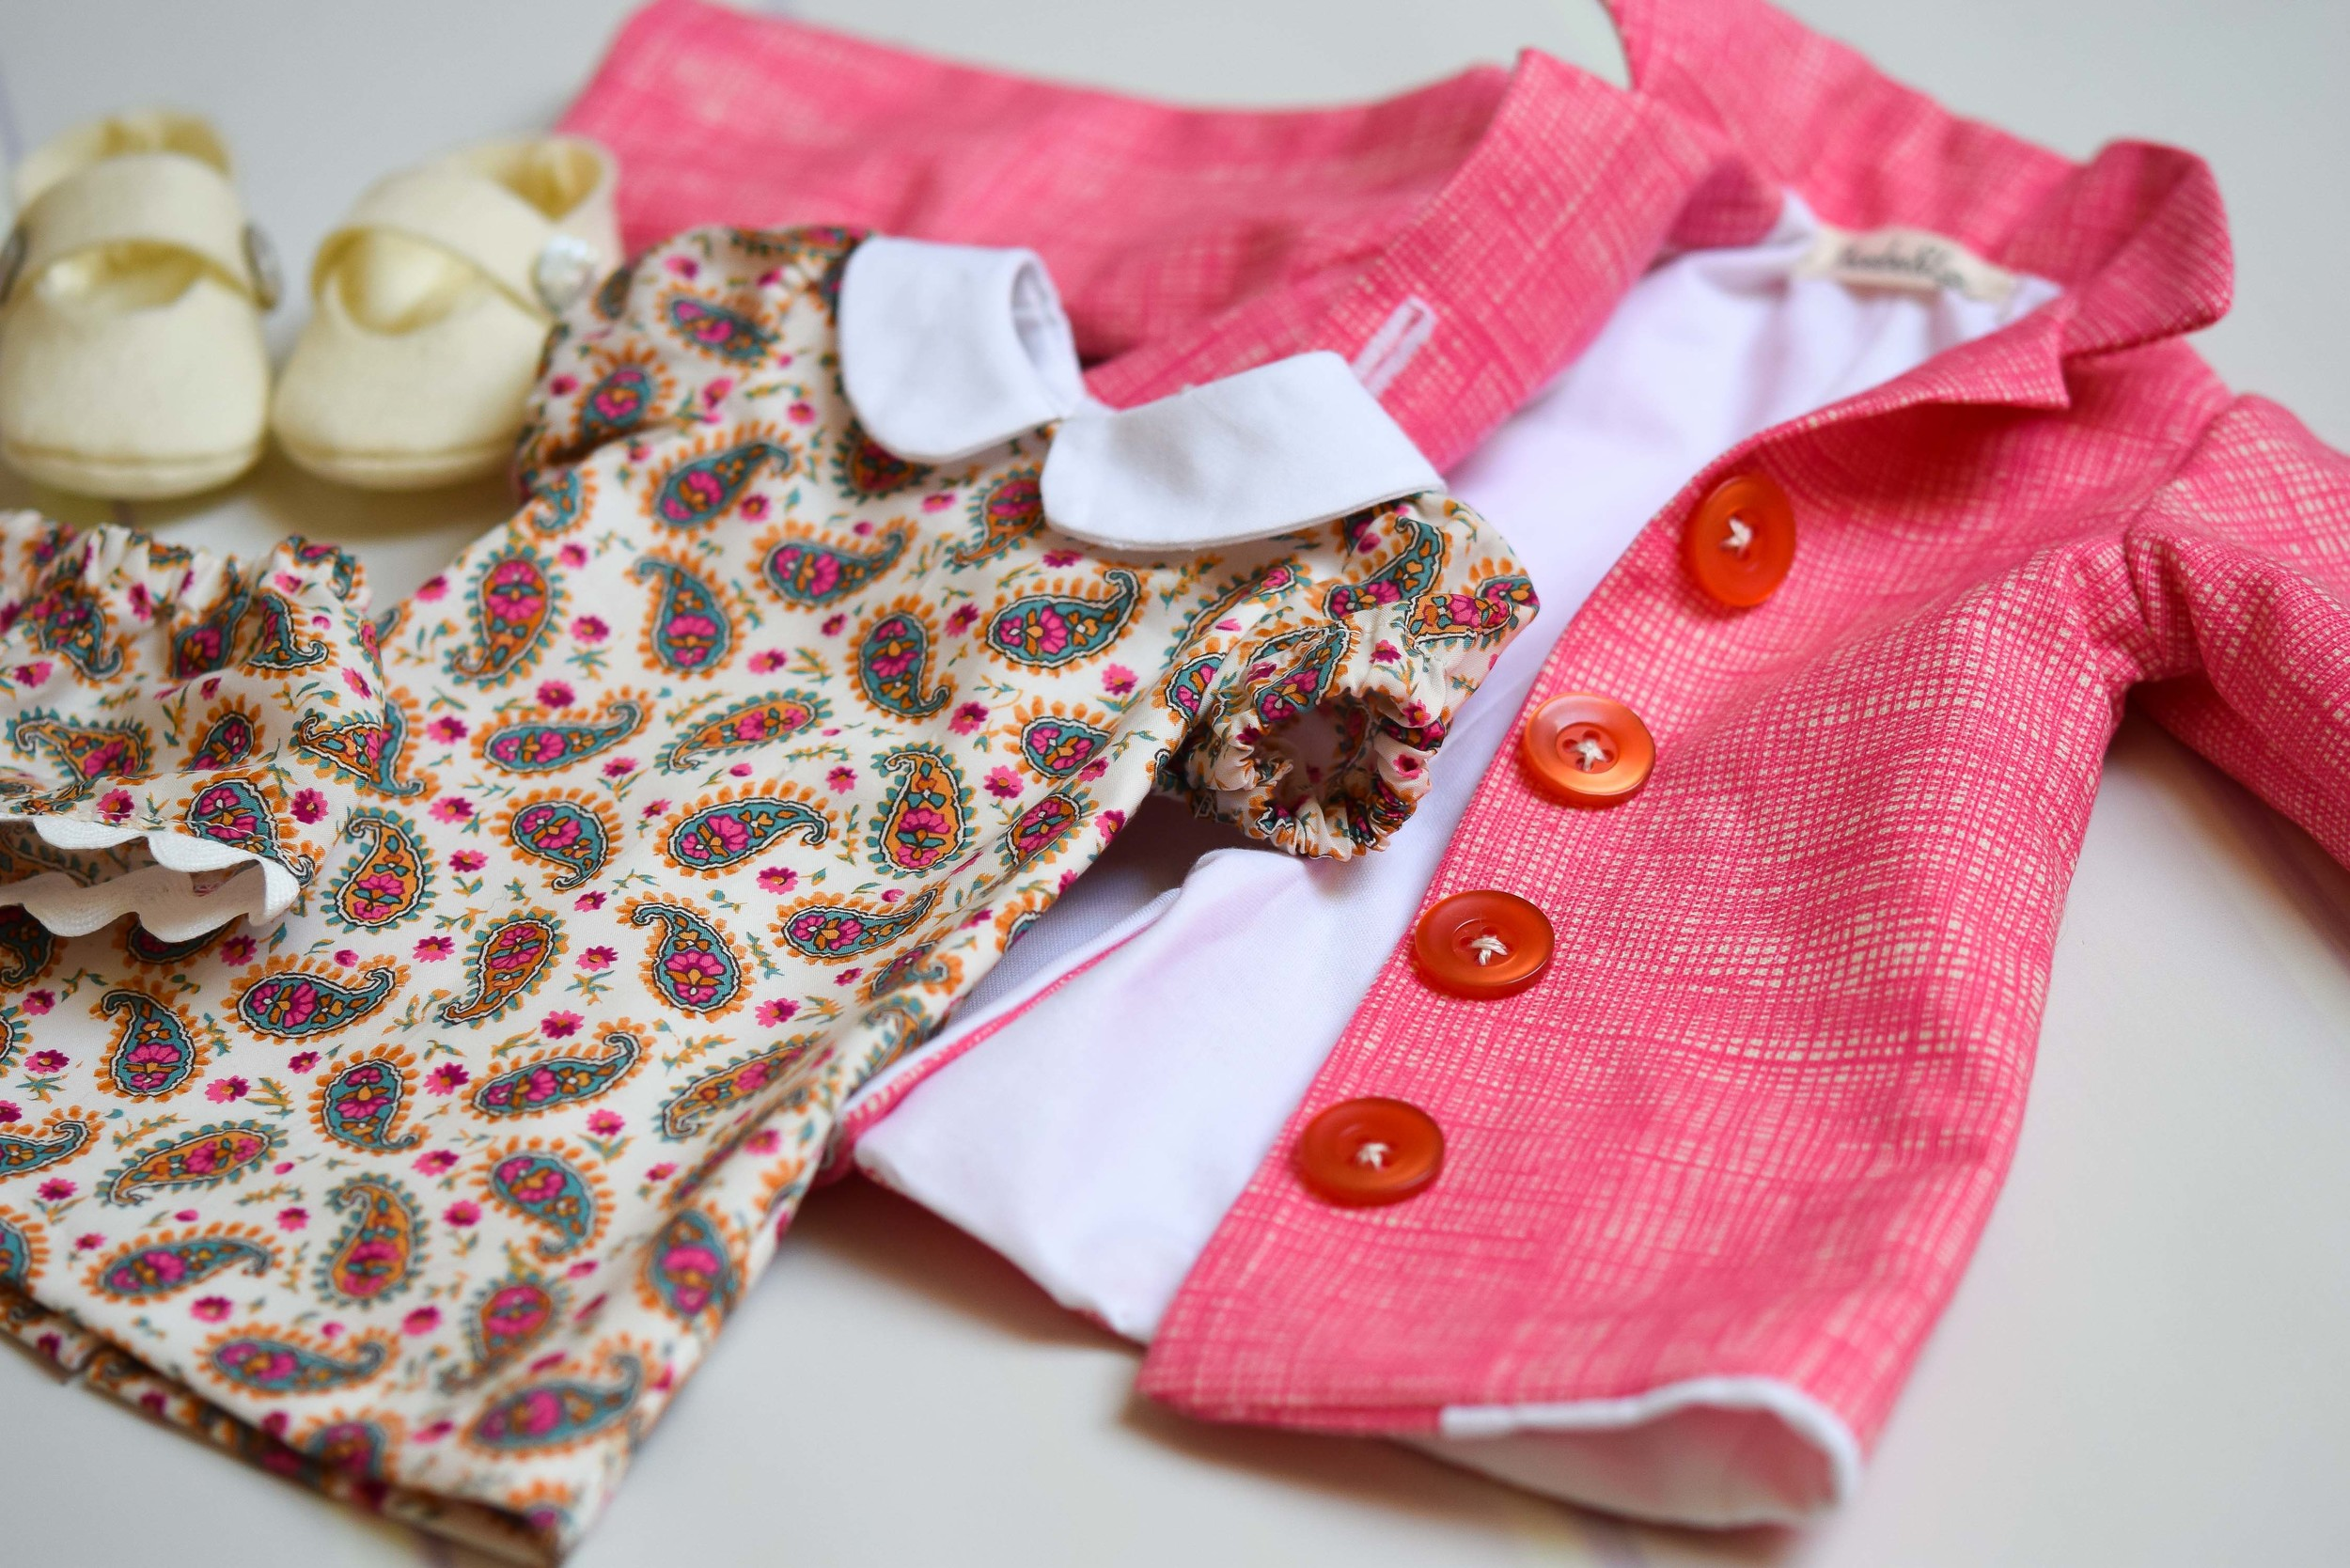 Phoebe and Egg Doll Clothes-23.jpg